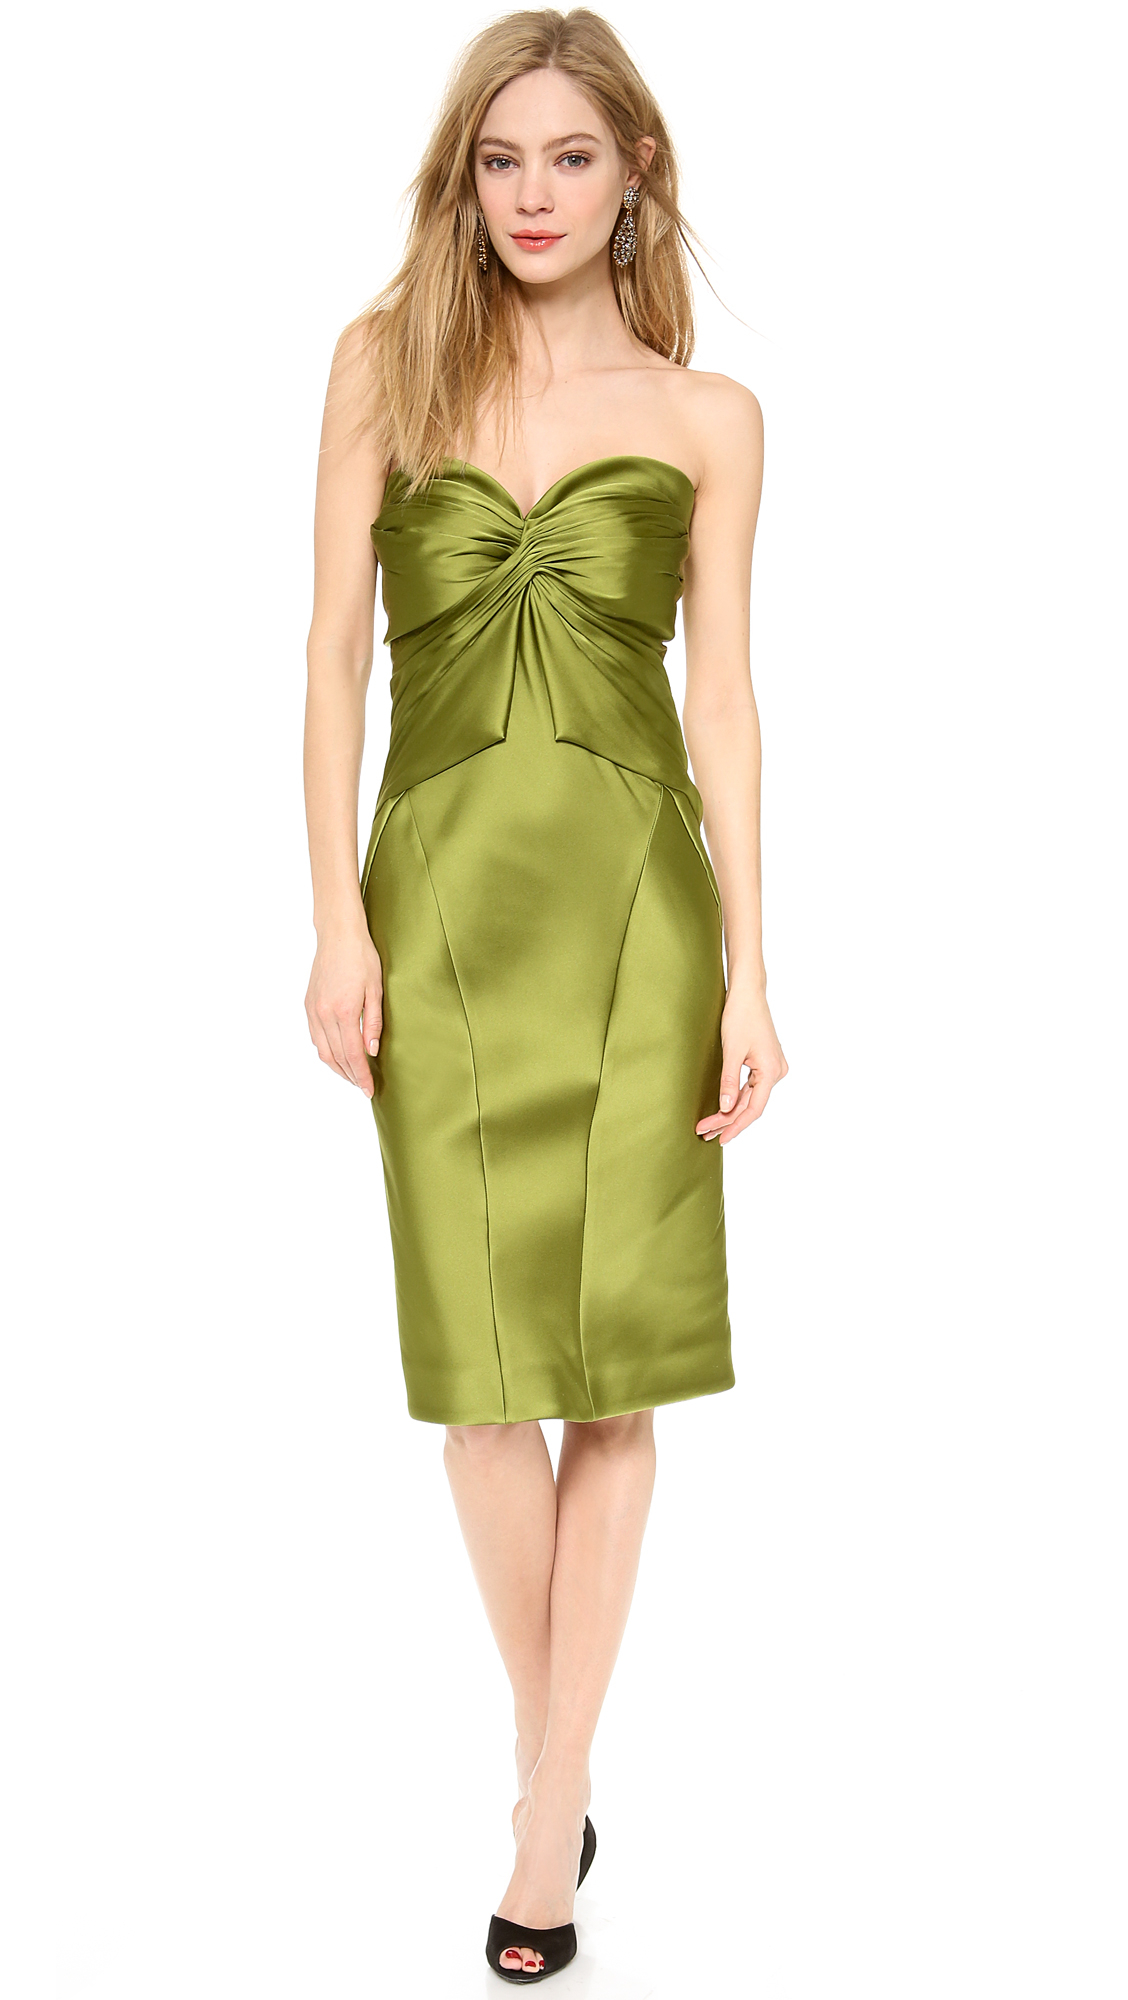 Lyst - Zac Posen Strapless Cocktail Dress